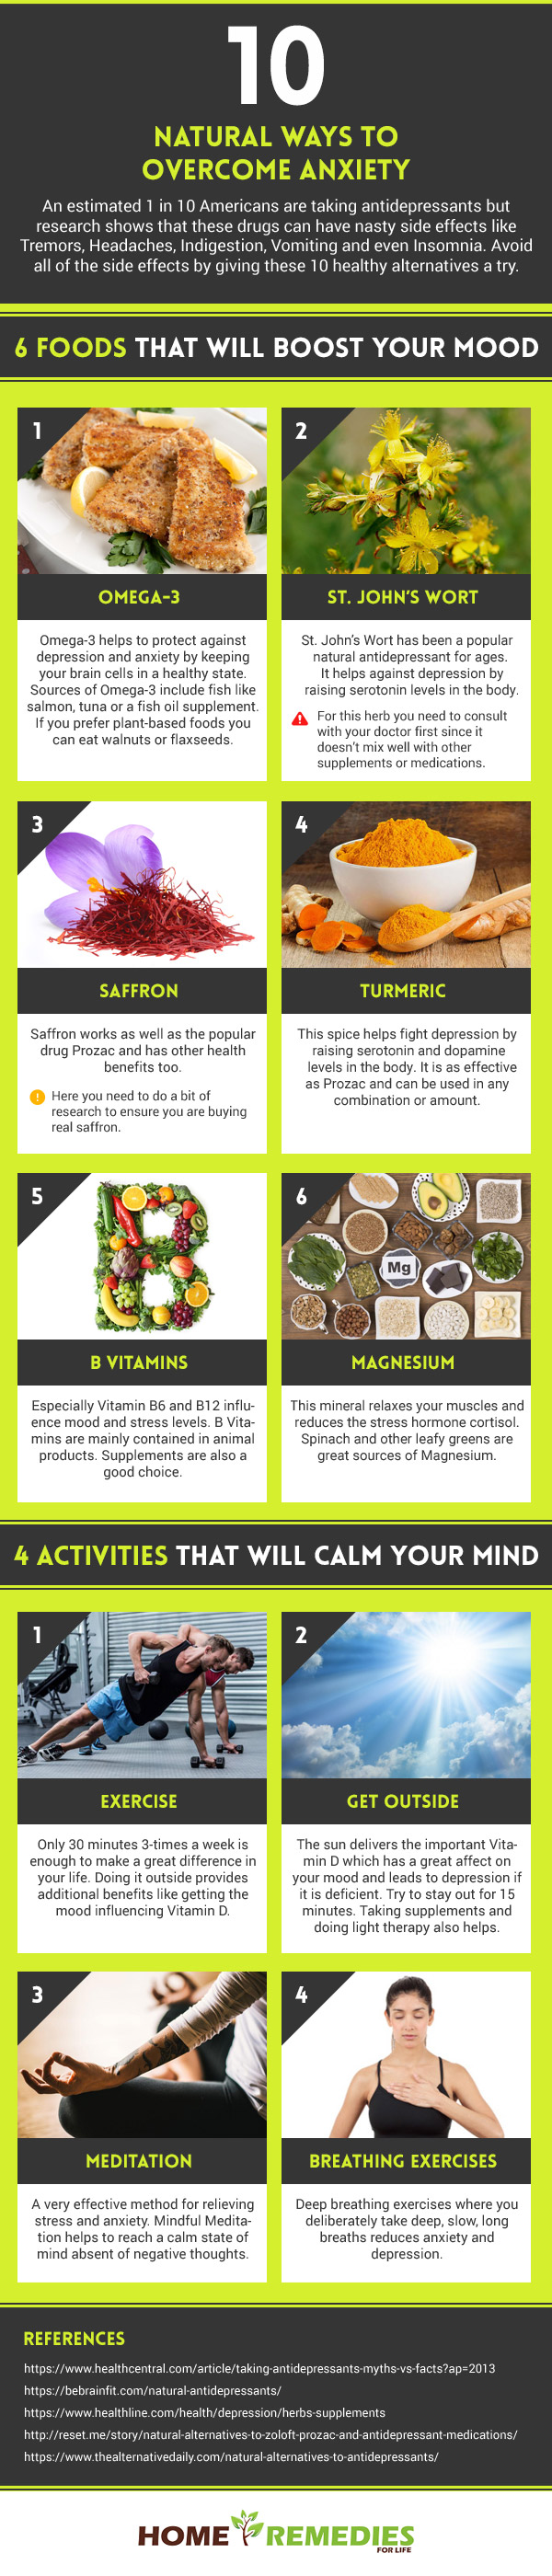 10-natural-ways-to-overcome-anxiety-infographic-plaza